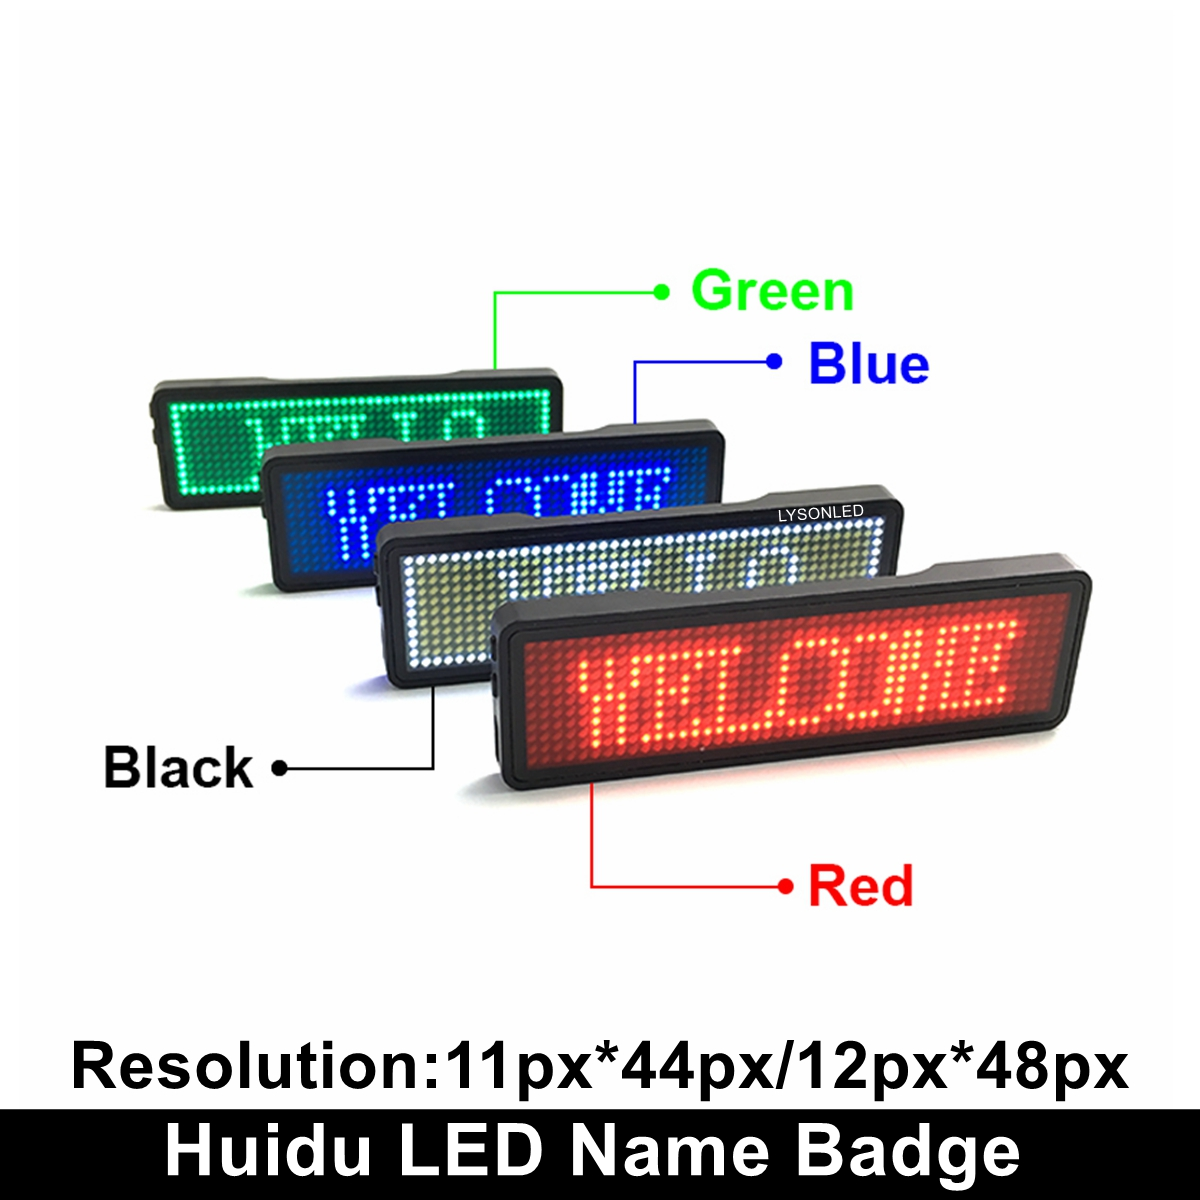 LYSONLED Red Color Scrolling Message Led Name Badge , 44x11 /48x12 Dots Single Color Rechargeable Led Name Tag For Event